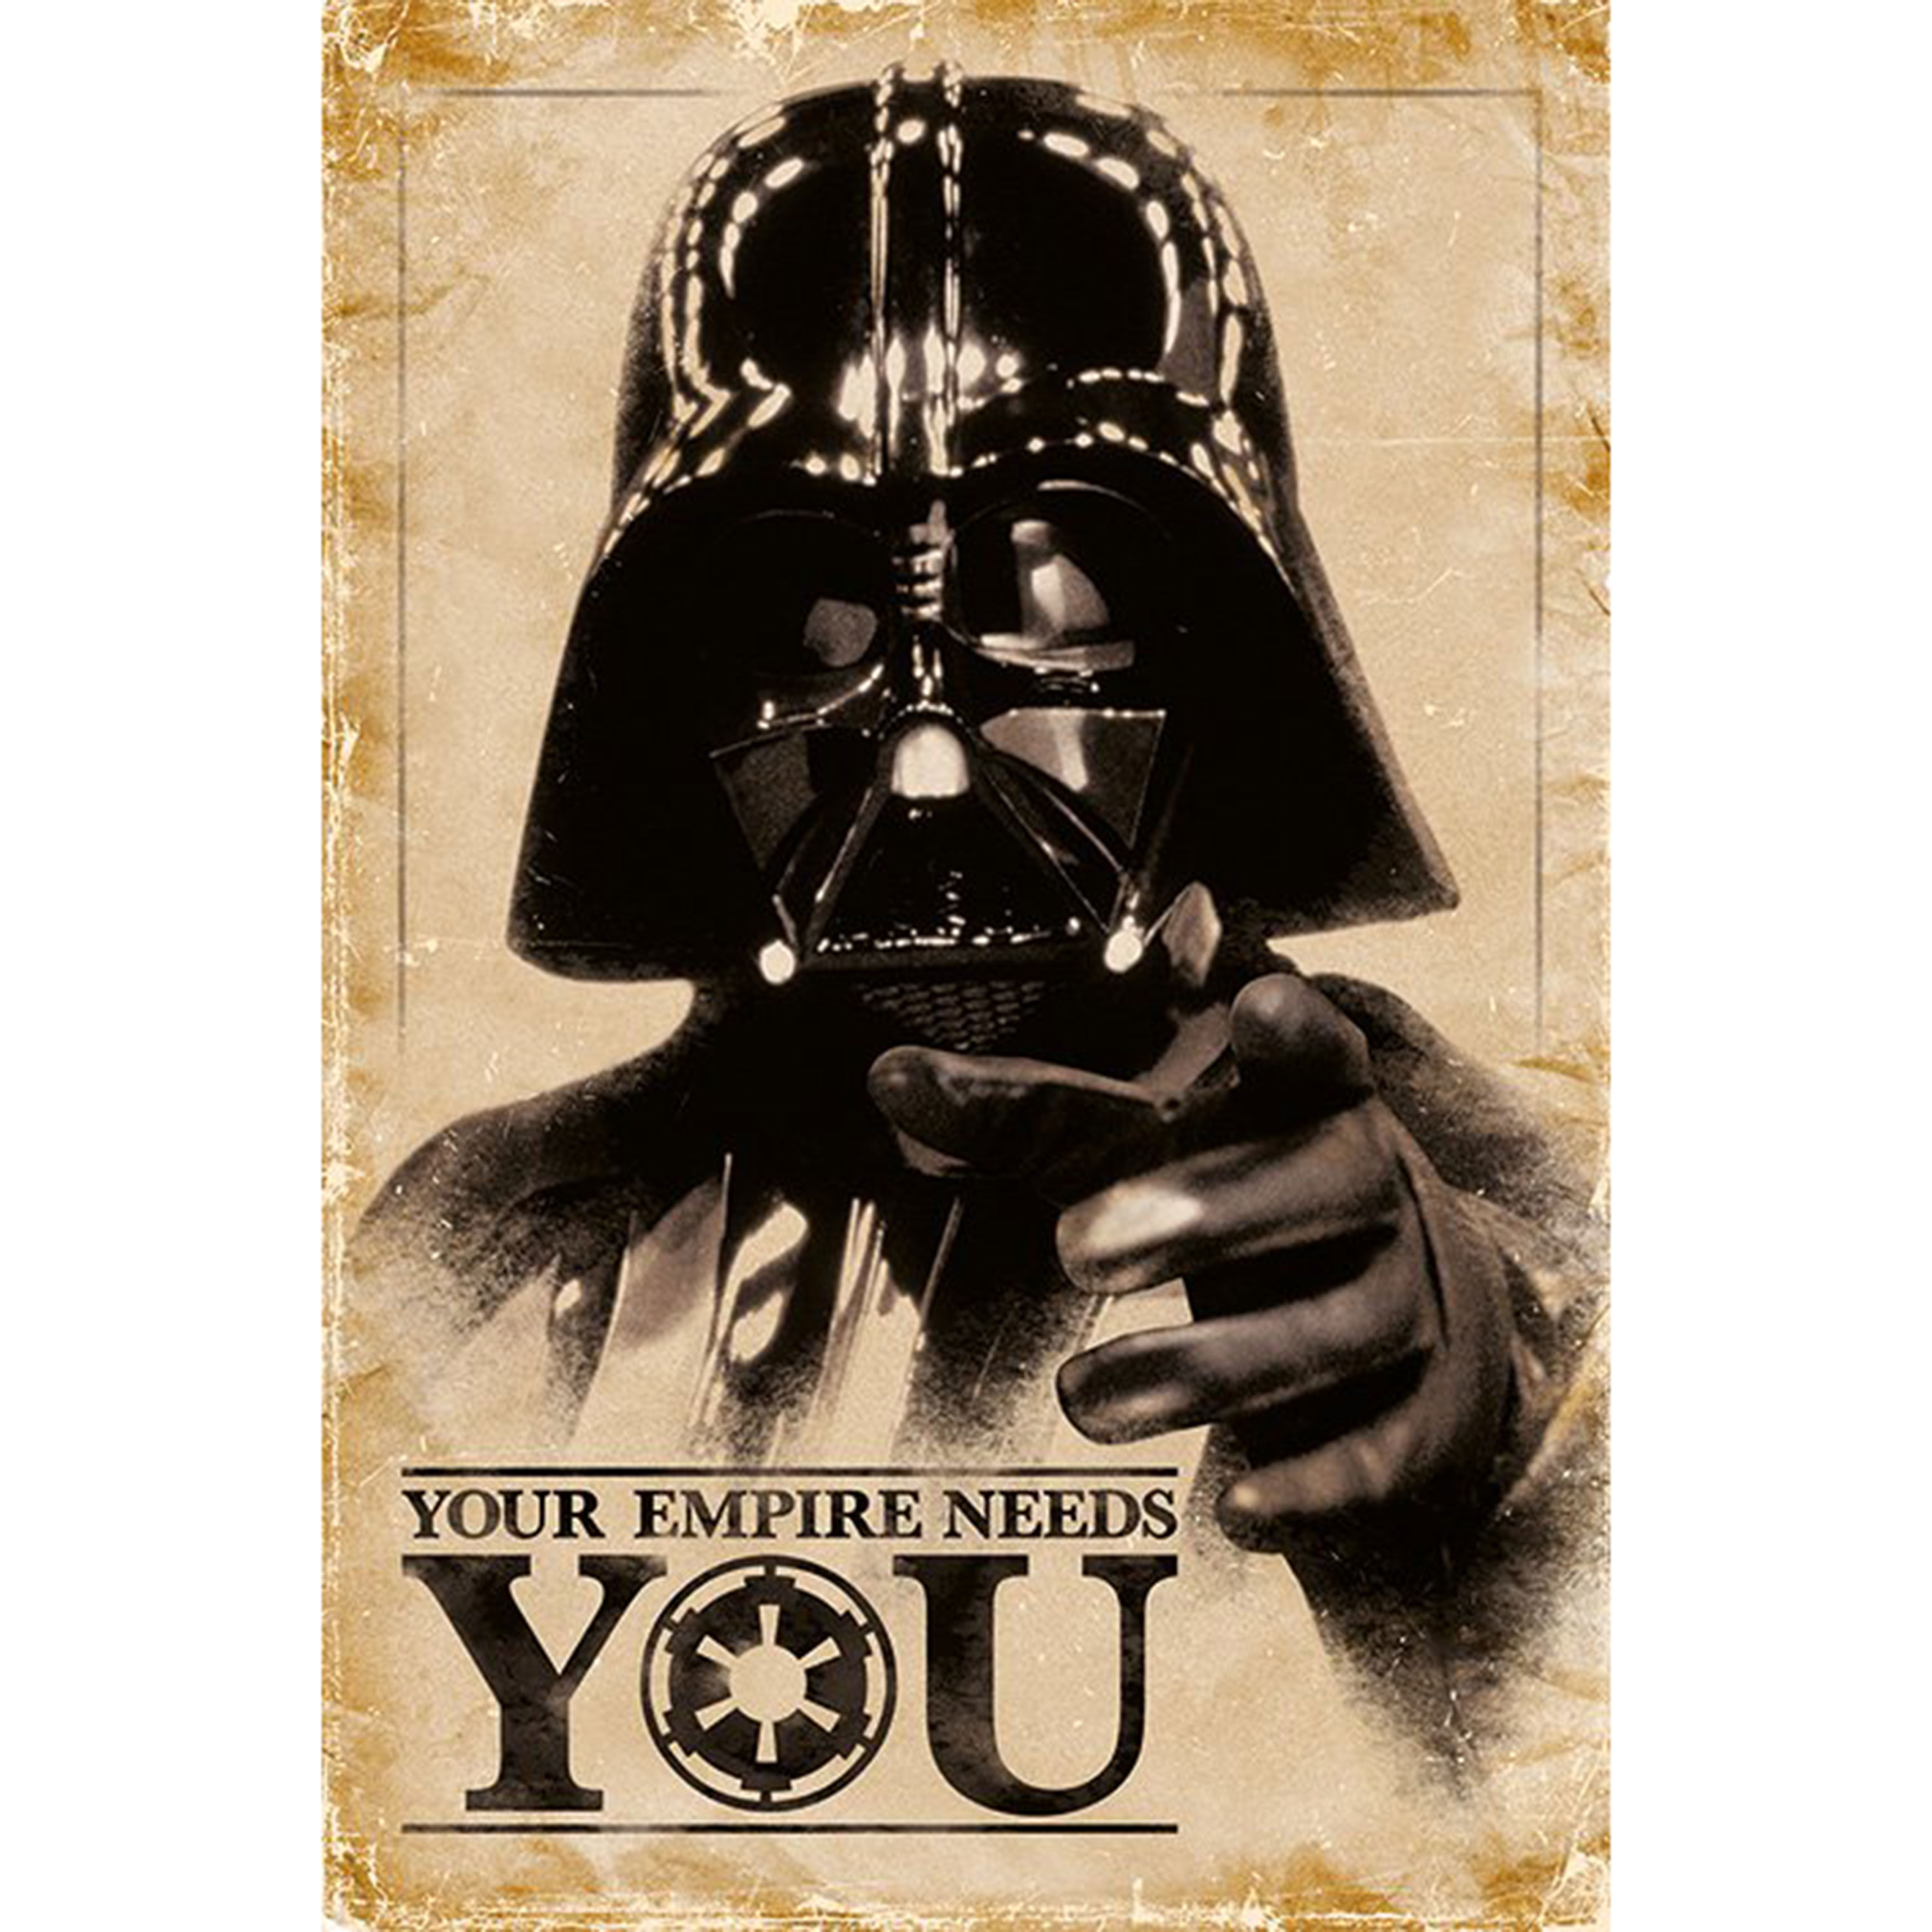 Star Wars The Empire Needs You Maxi Poster